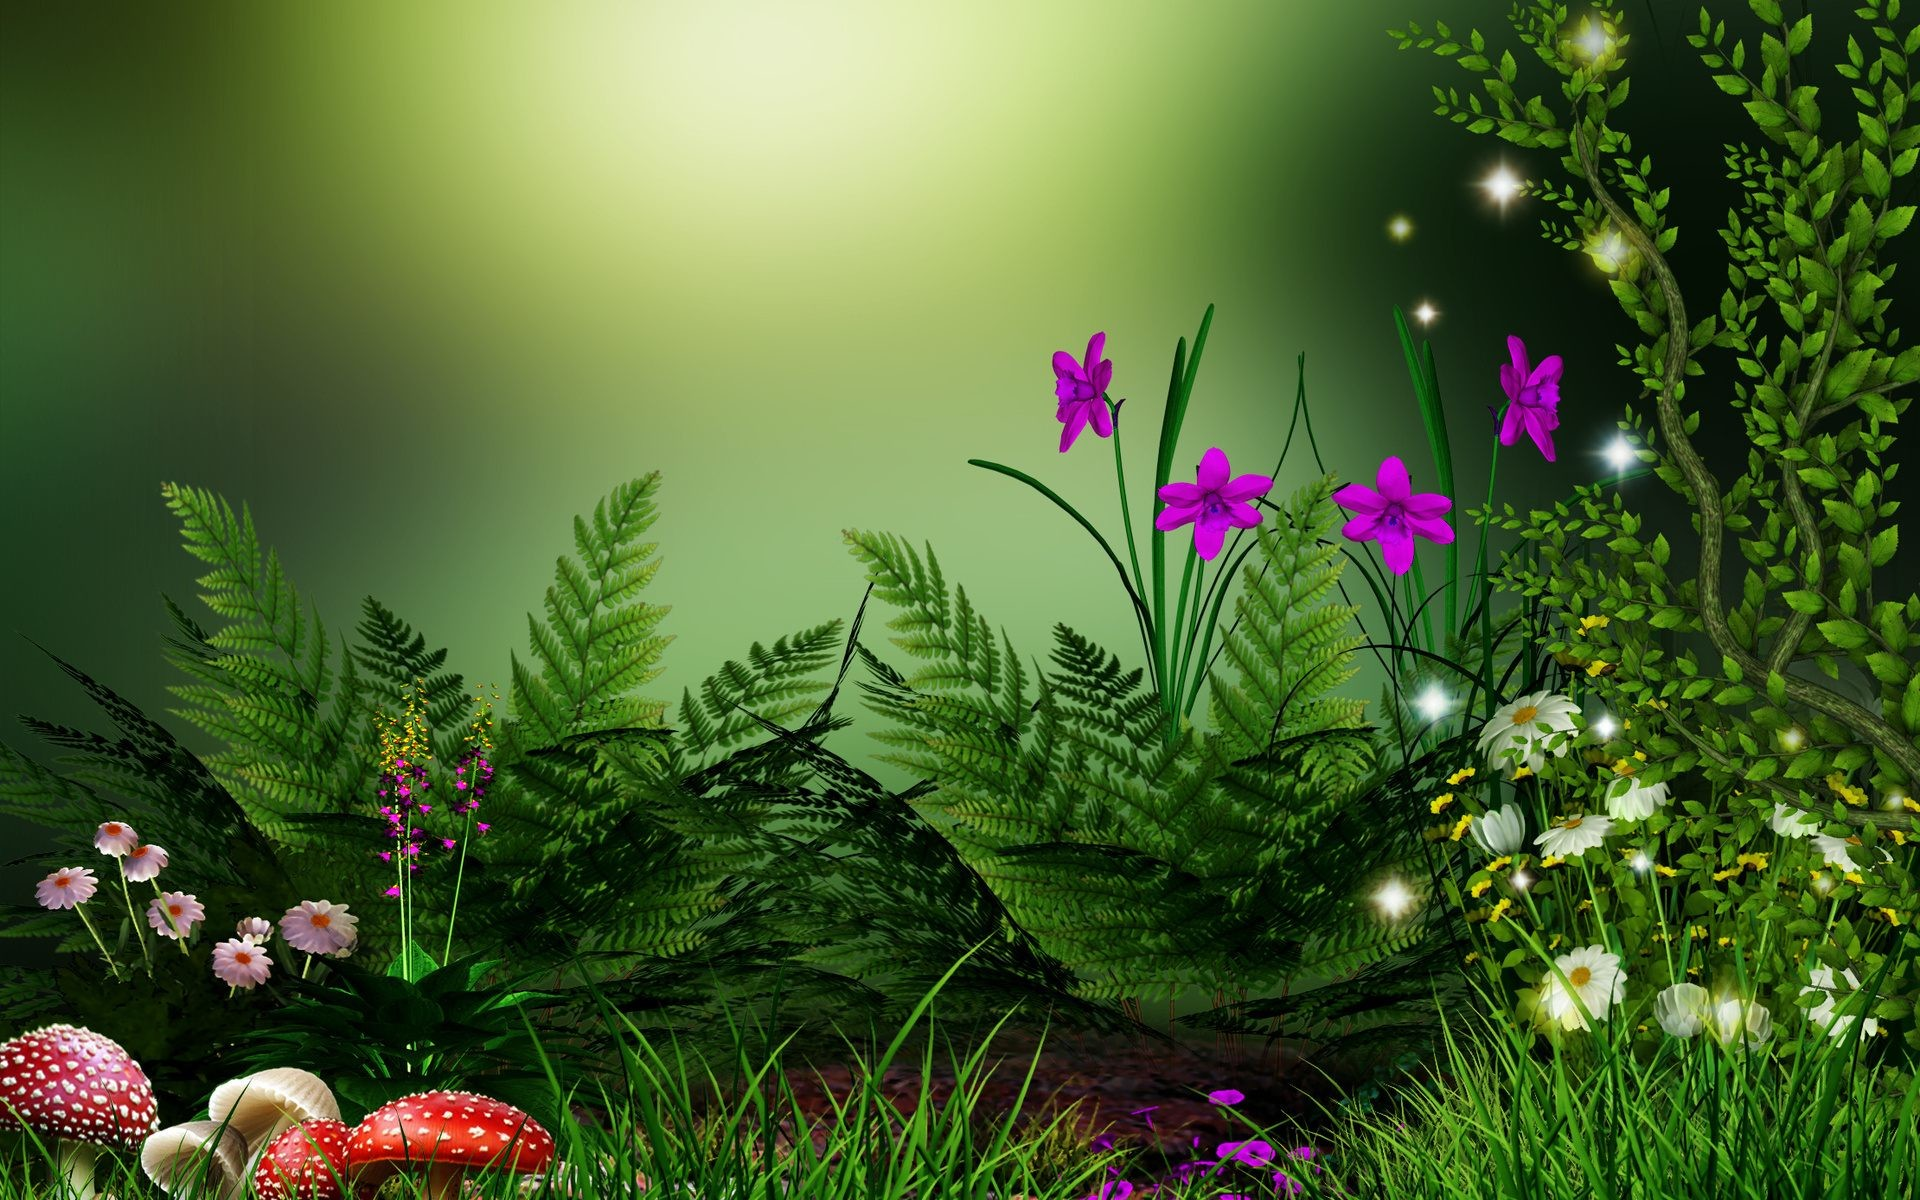 1920x1080 1920x1080 3D Nature Images Free Download.